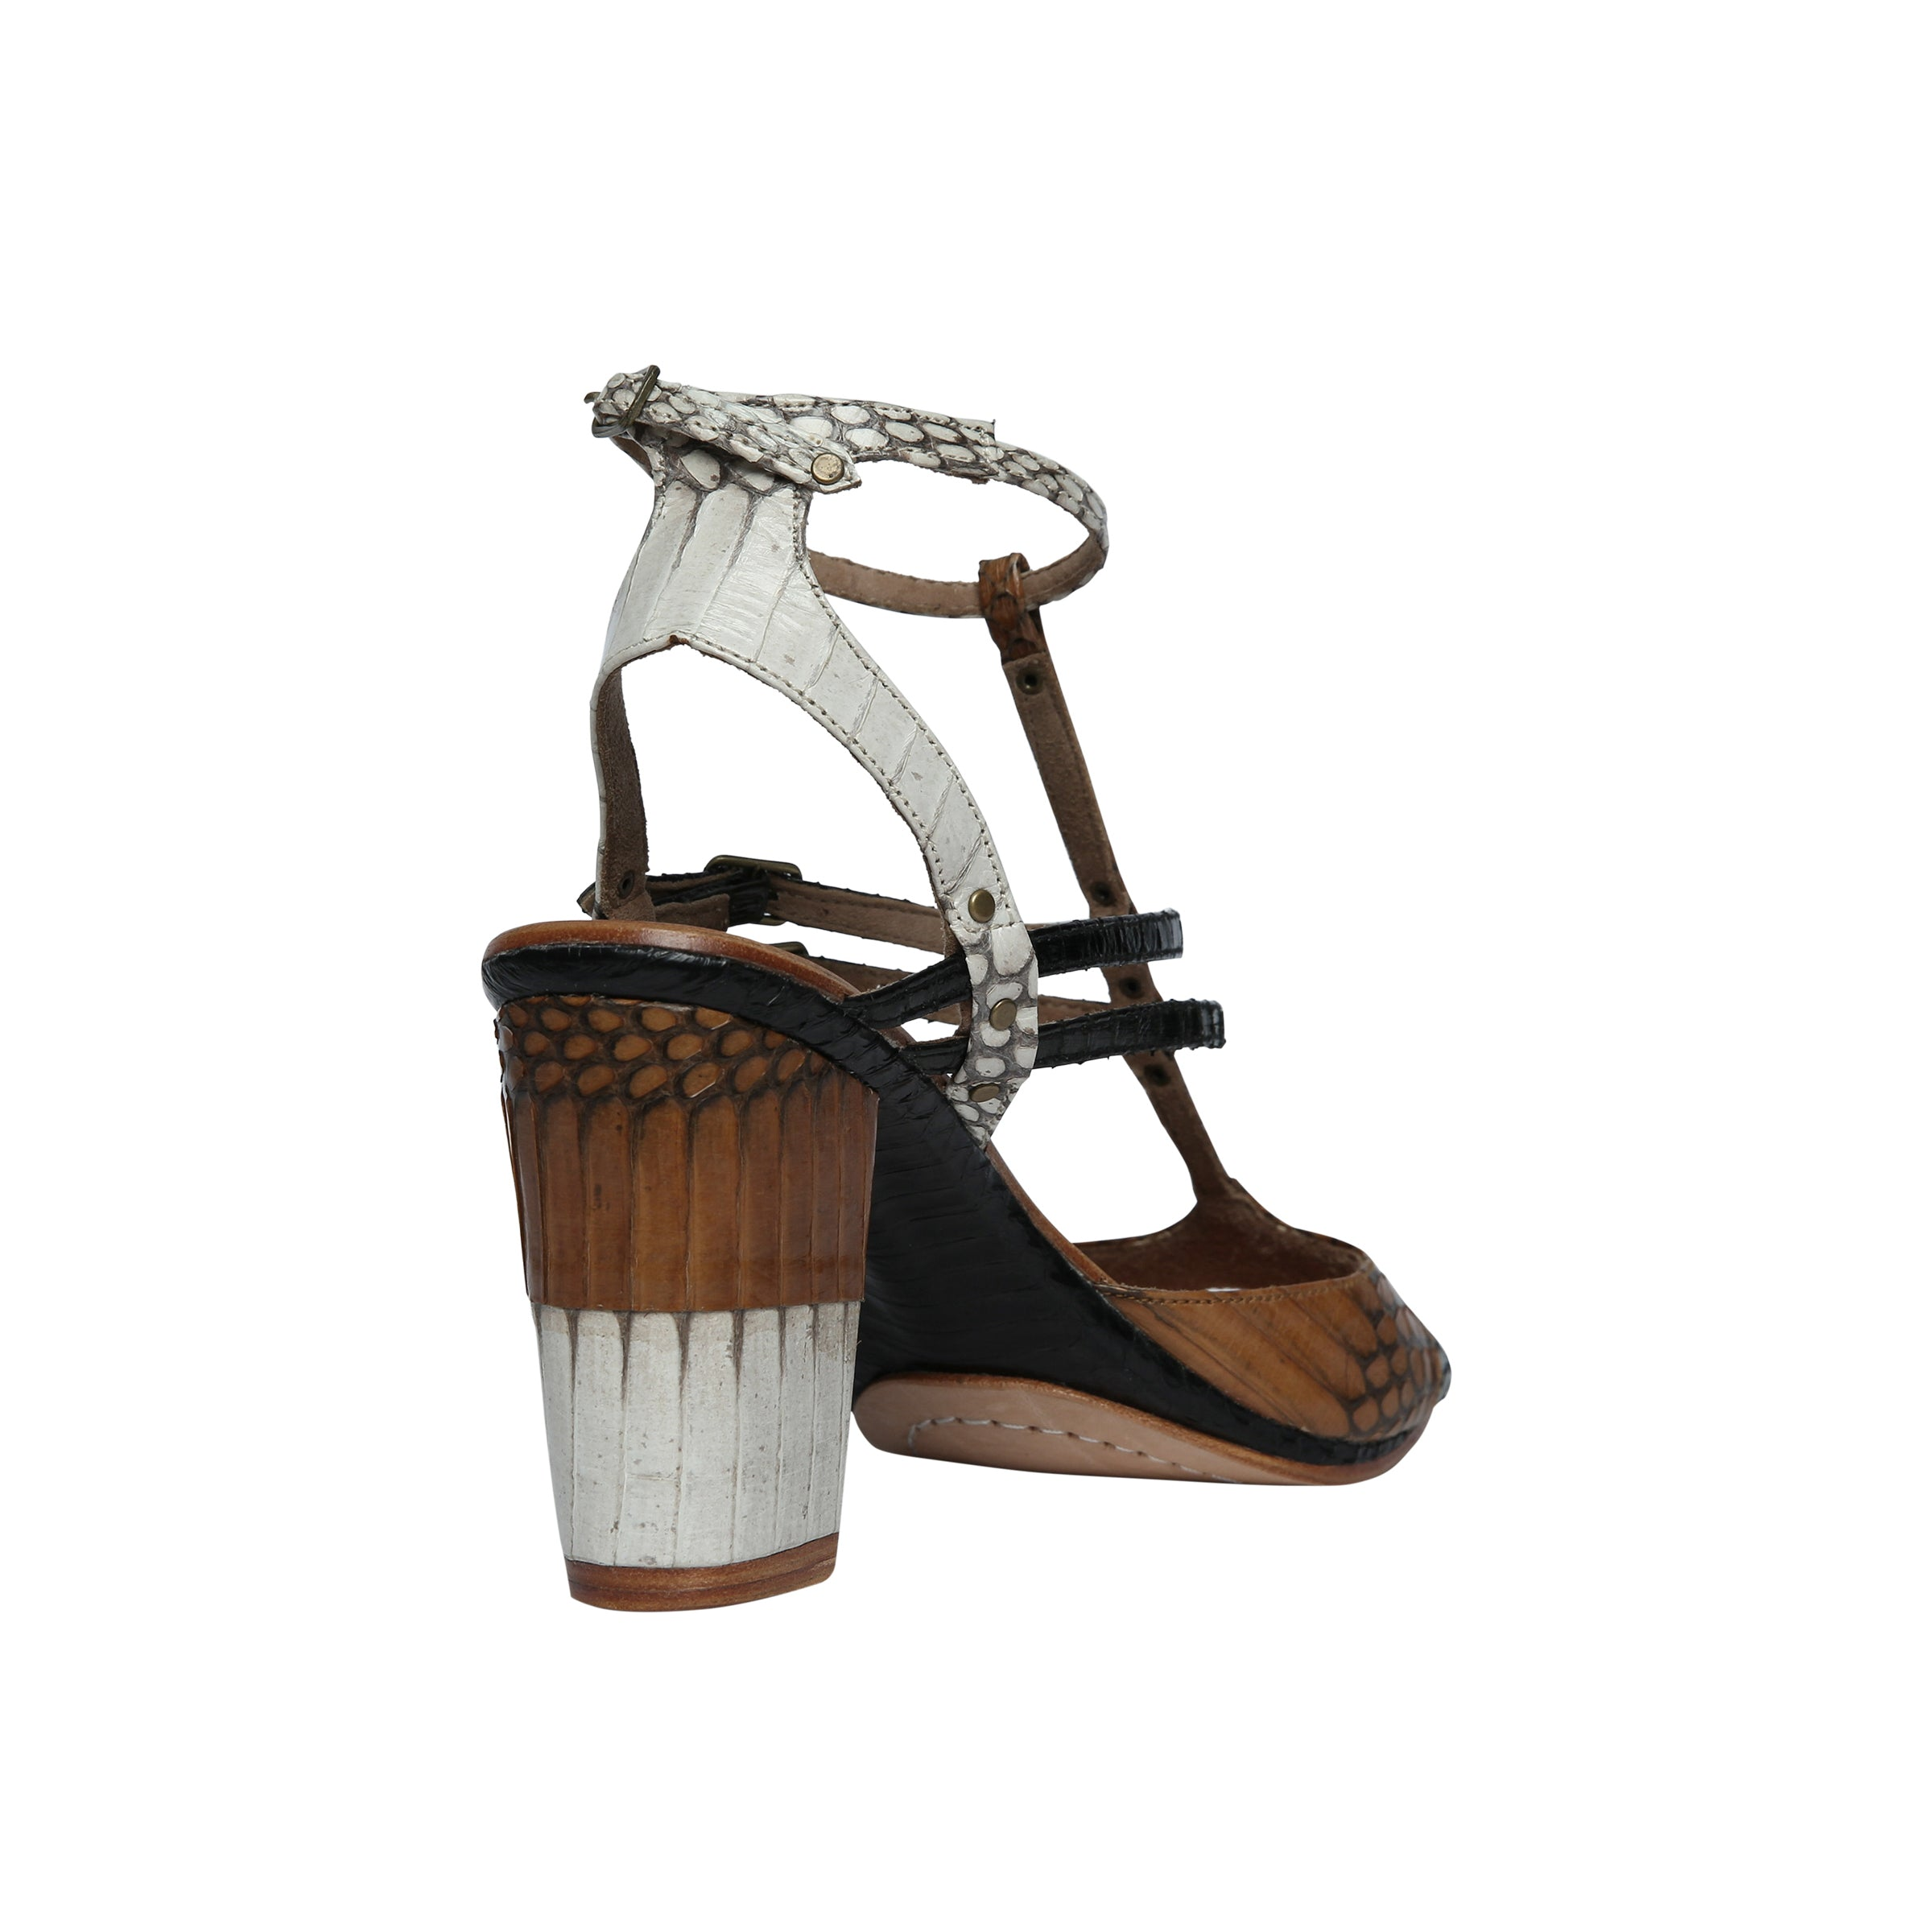 Time Of My Life Sandal - Camel/Black